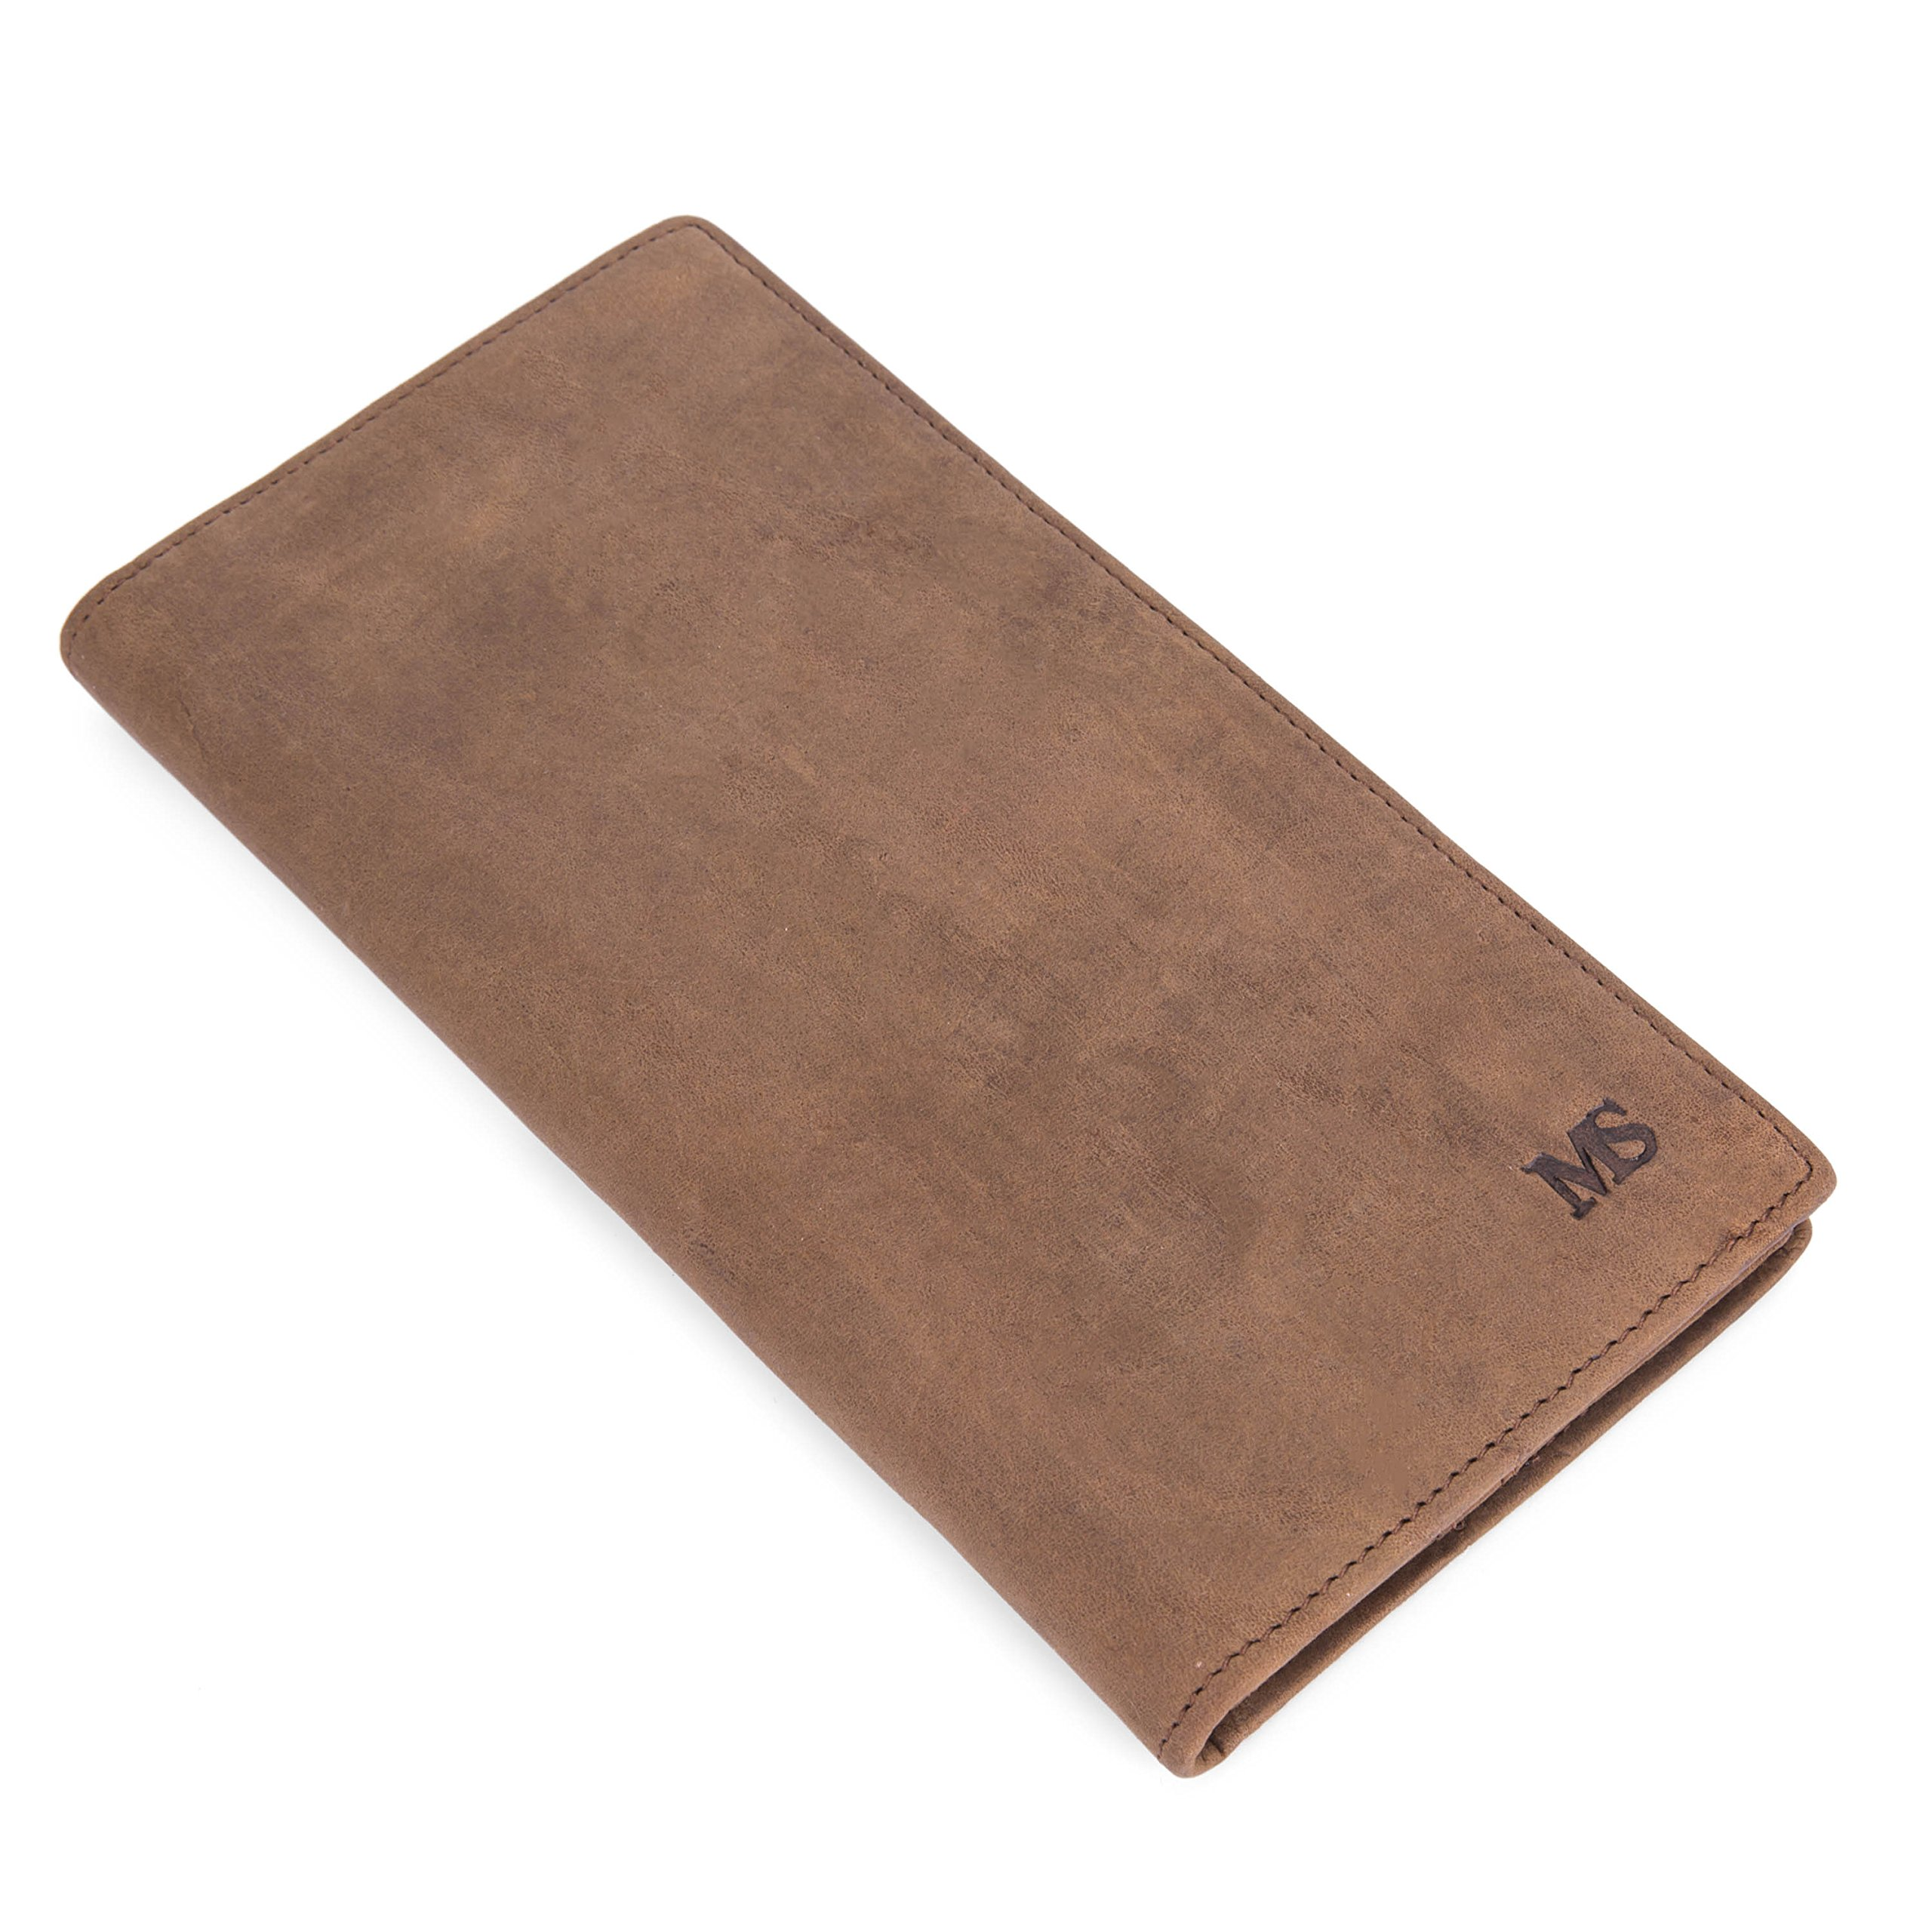 Very nice long wallet